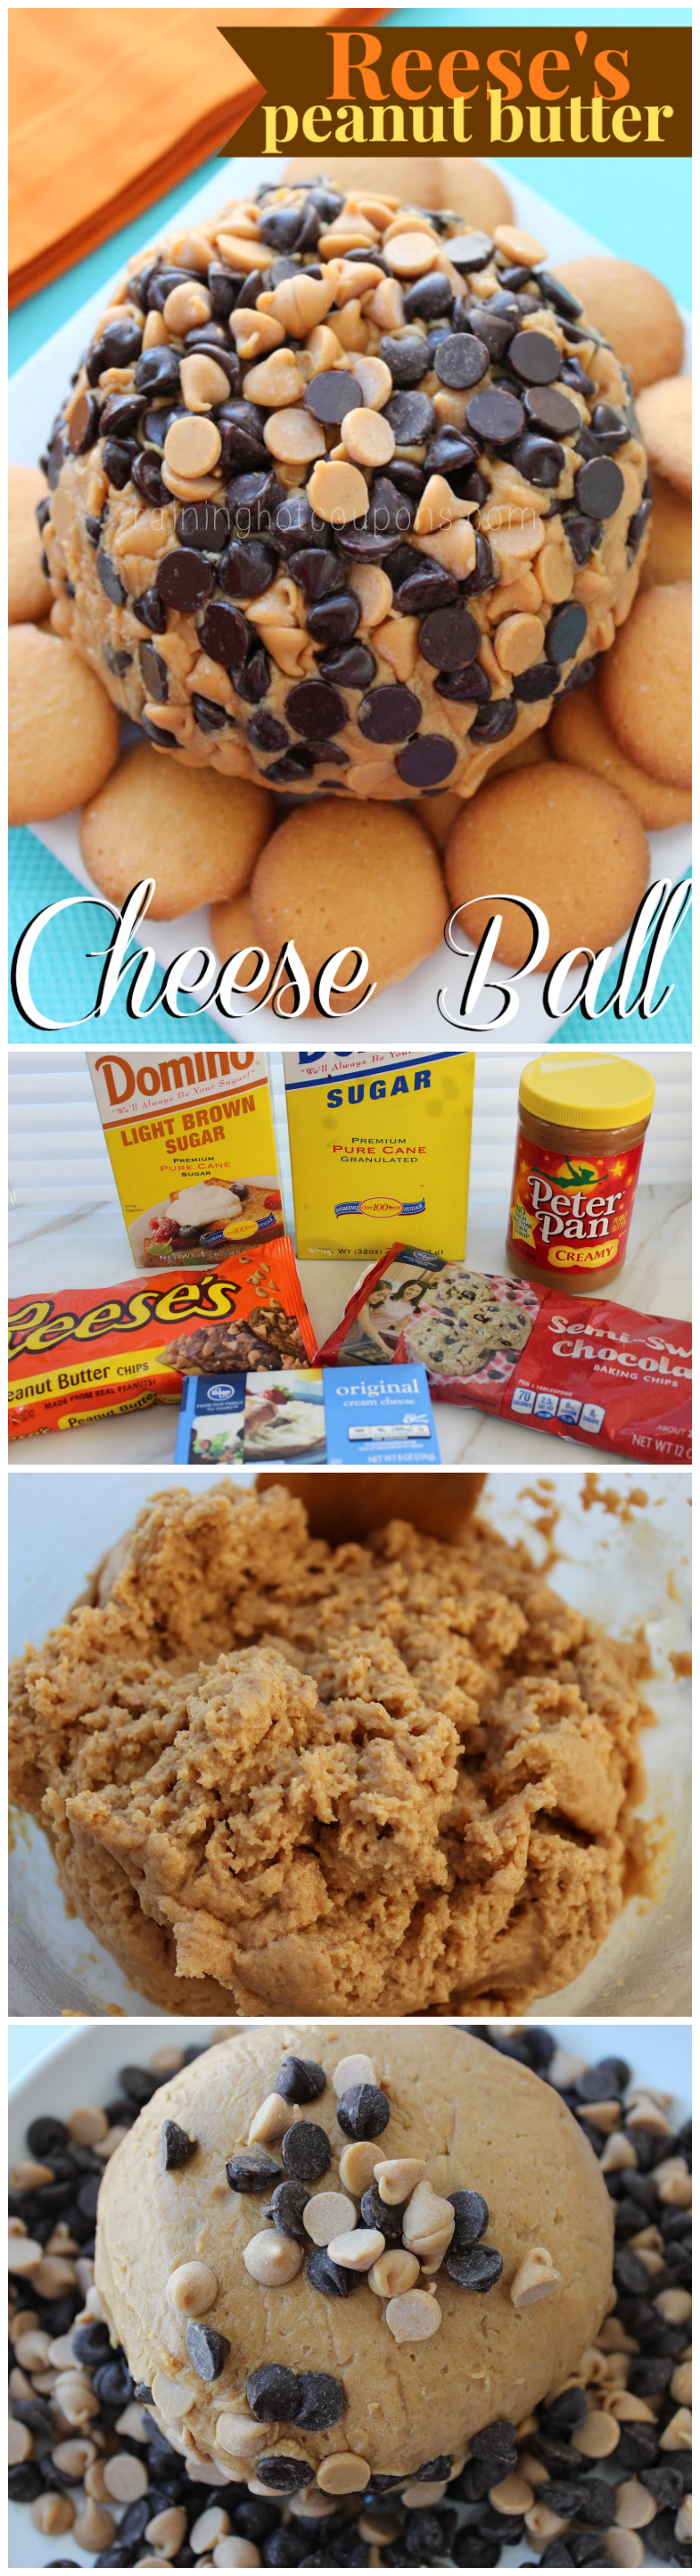 reeses cheese ball collage.png Reeses Peanut Butter Cheese Ball